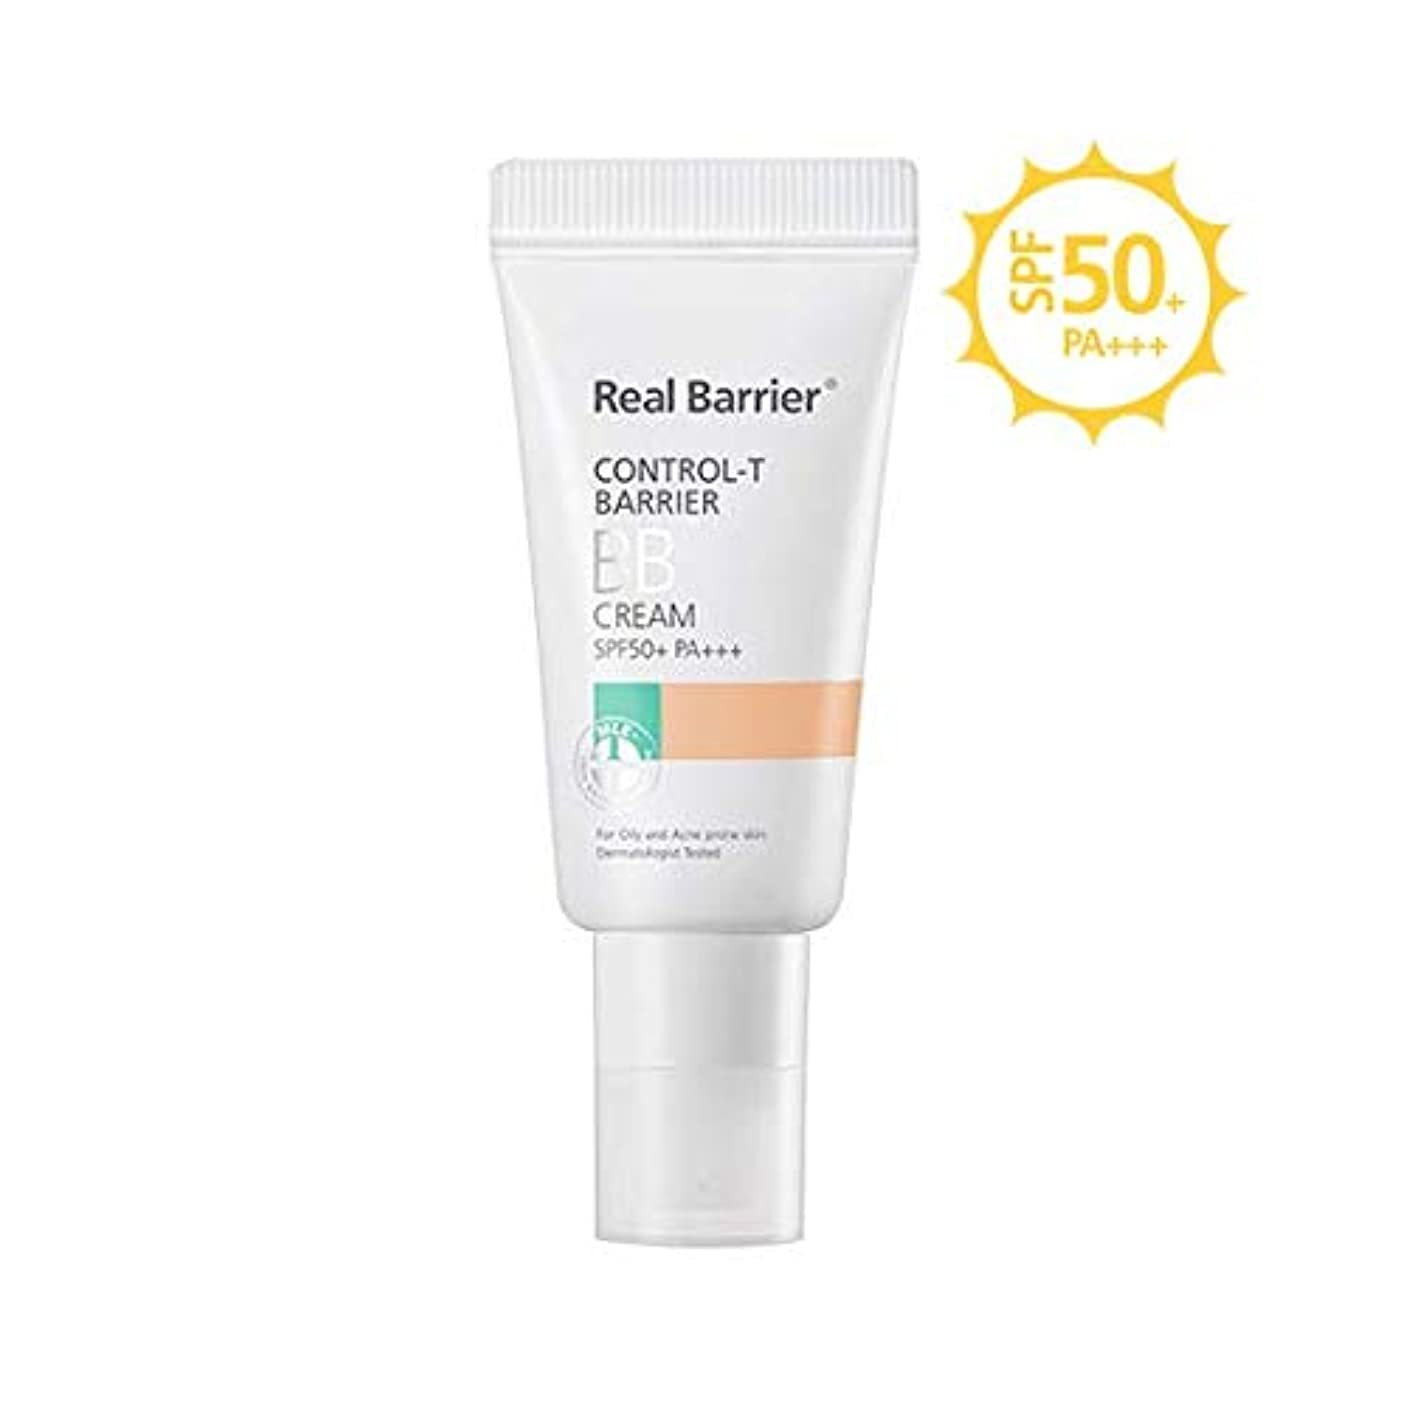 ATOPALM Real Barrier リアルバリアコントロール-TバリアBBクリームSPF50 + PA +++ 50ml / REAL BARIER CONTROL-T BARRIER BB CREAM 50ml...